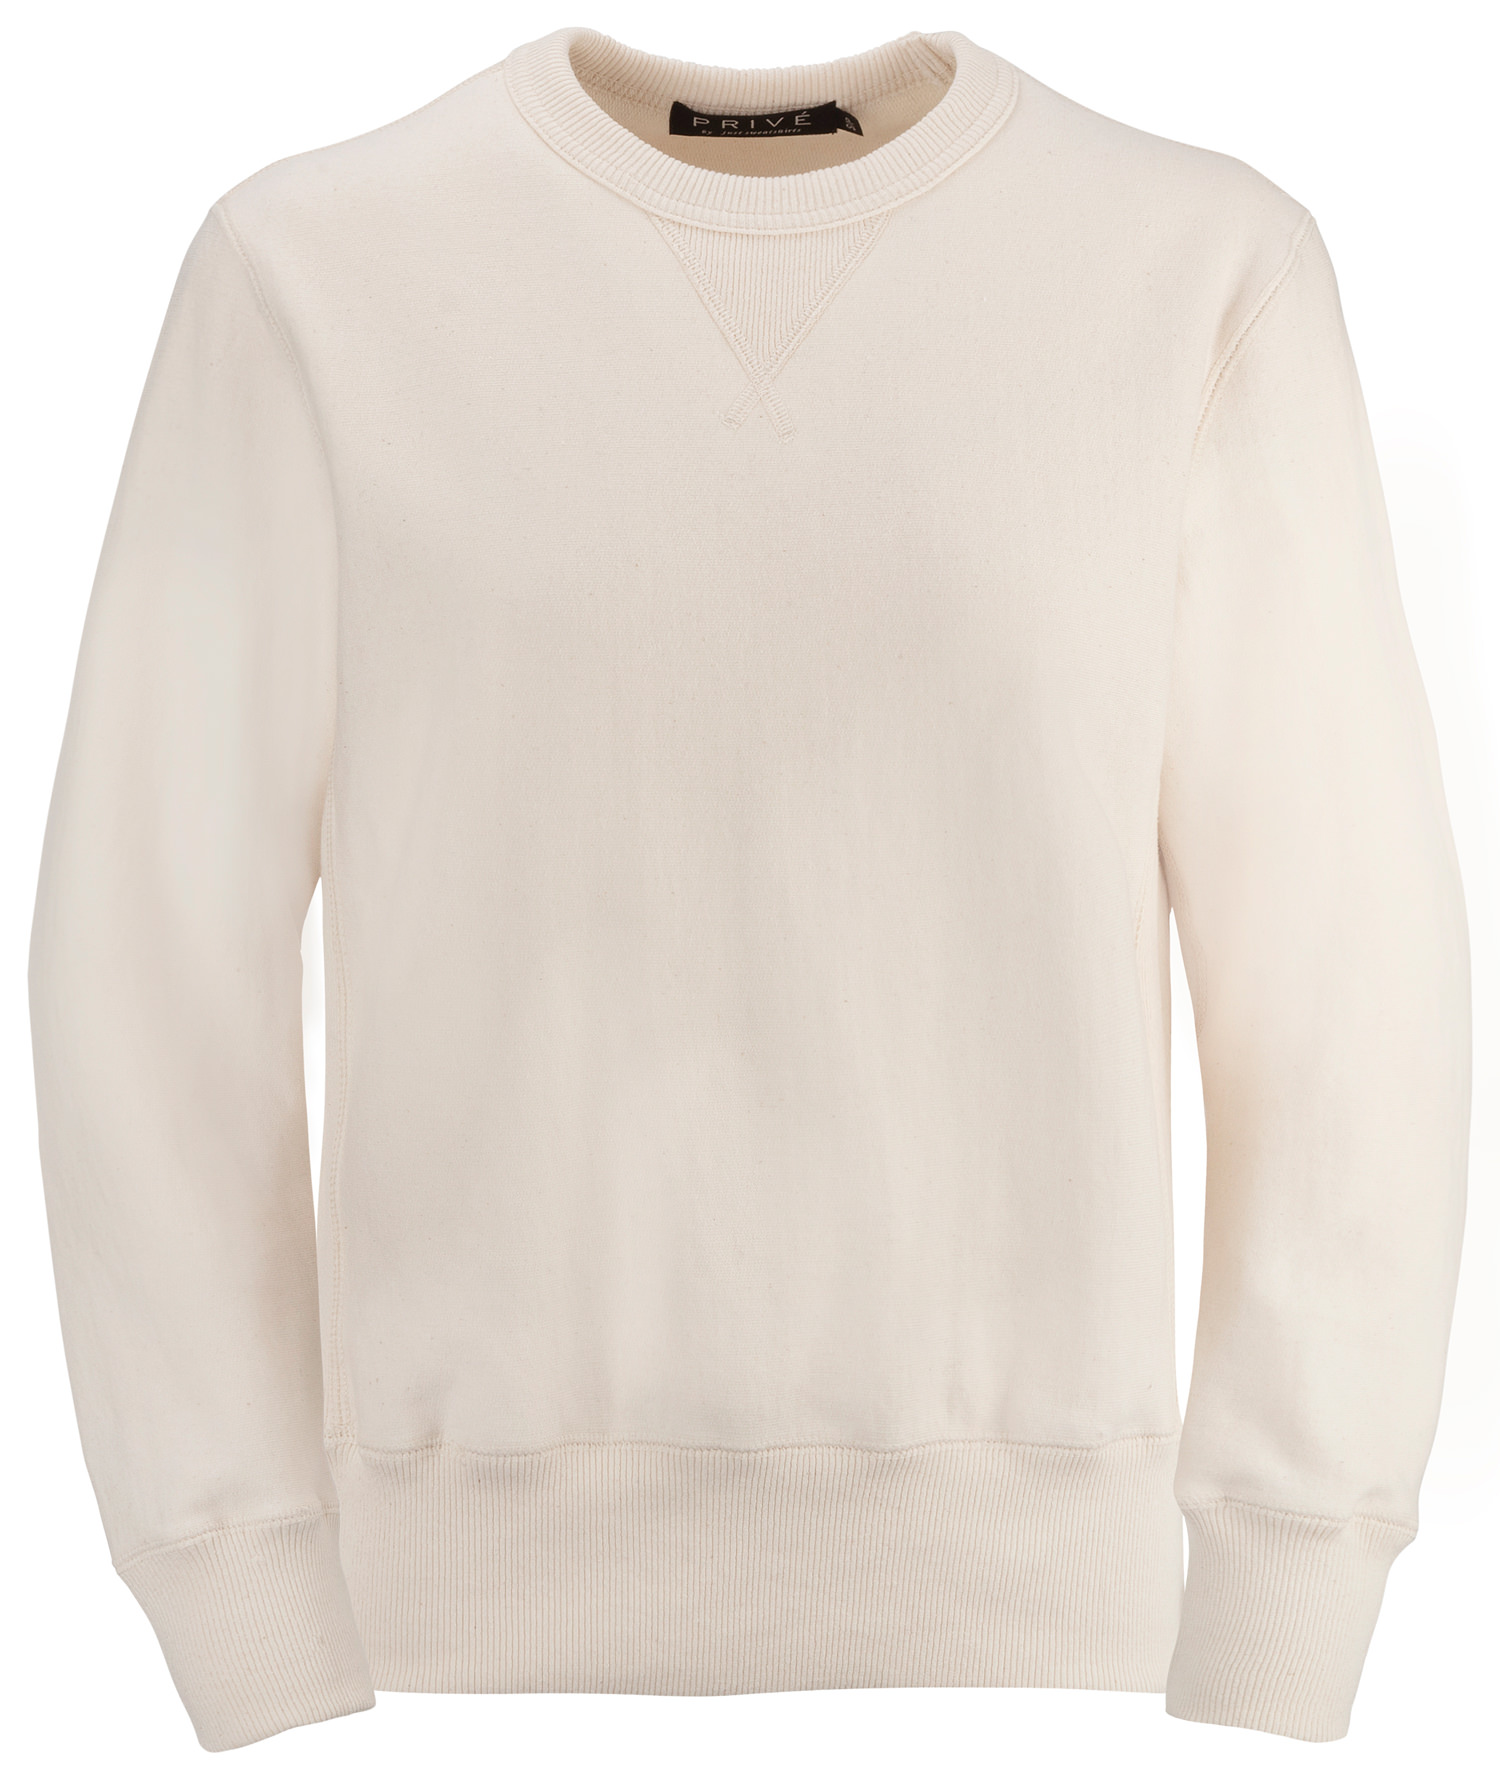 PRIVÉ Crewneck Natural with Side Rib 100% Cotton